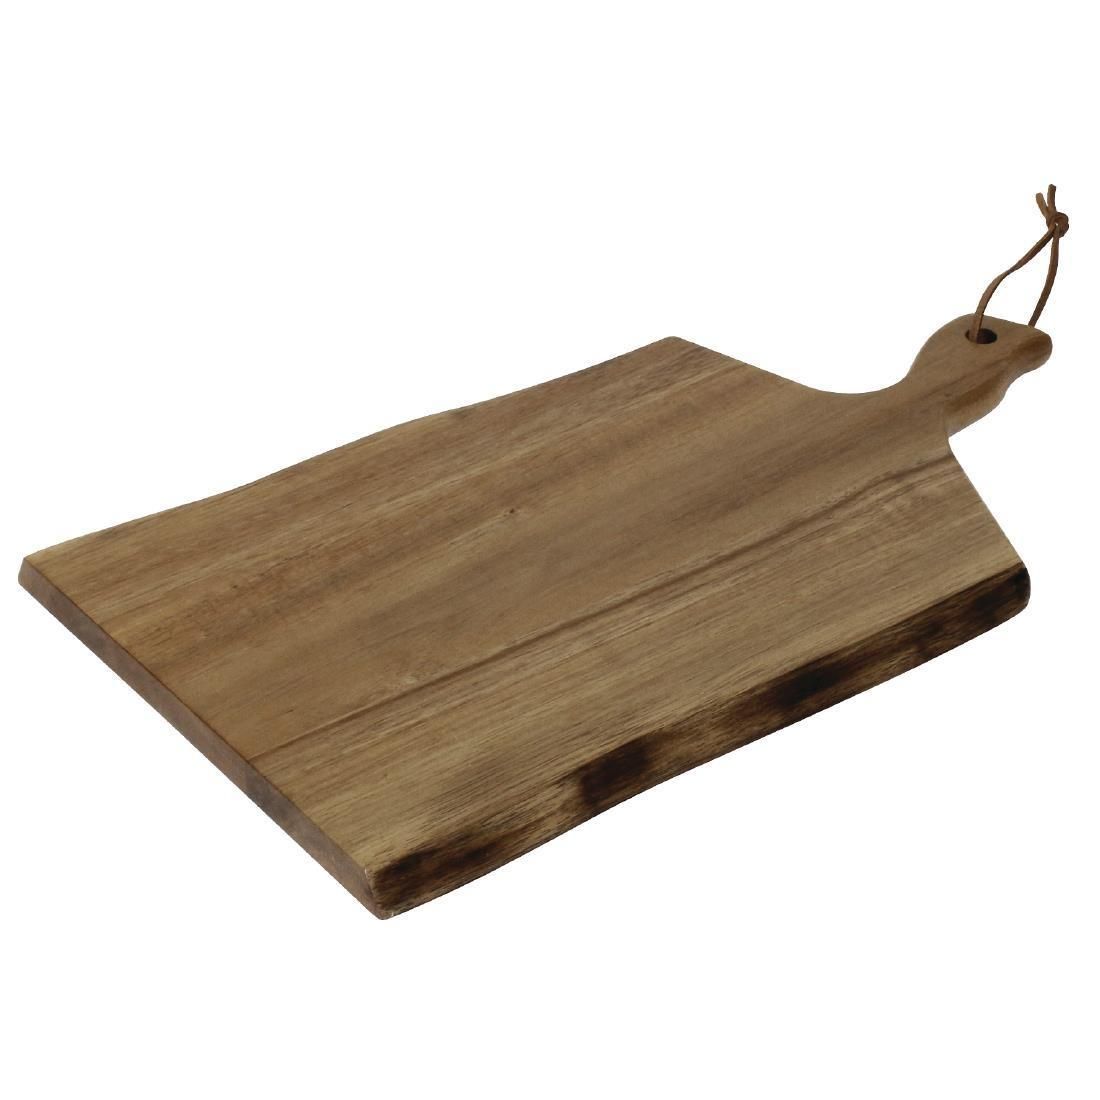 Olympia Acacia Wood Wavy Handled Wooden Board Small 305mm